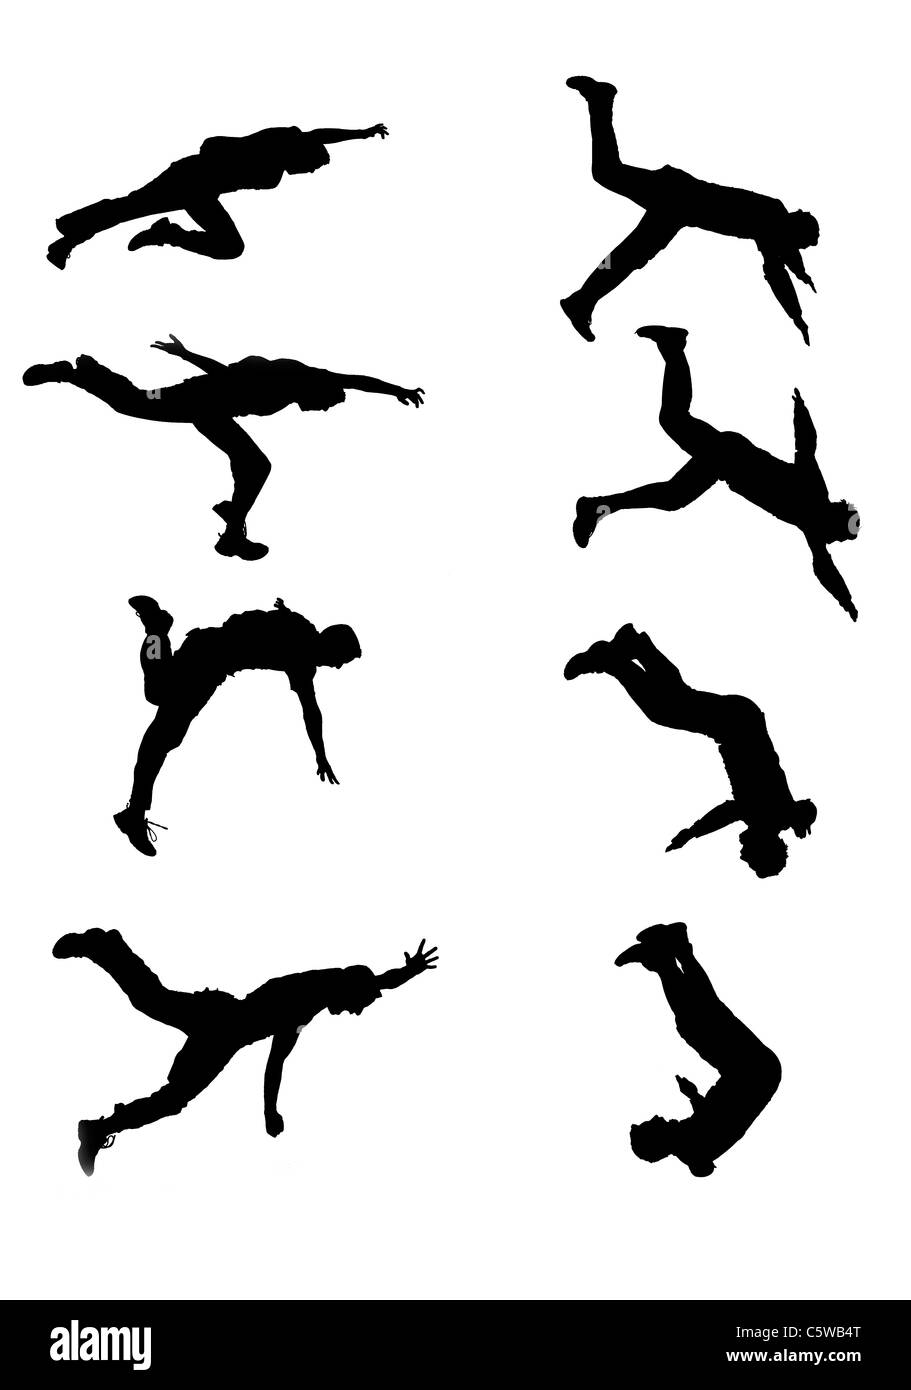 Silhouettes made from photos of two stuntmen at different stages of jumps. Each vertical set is one jump. - Stock Image